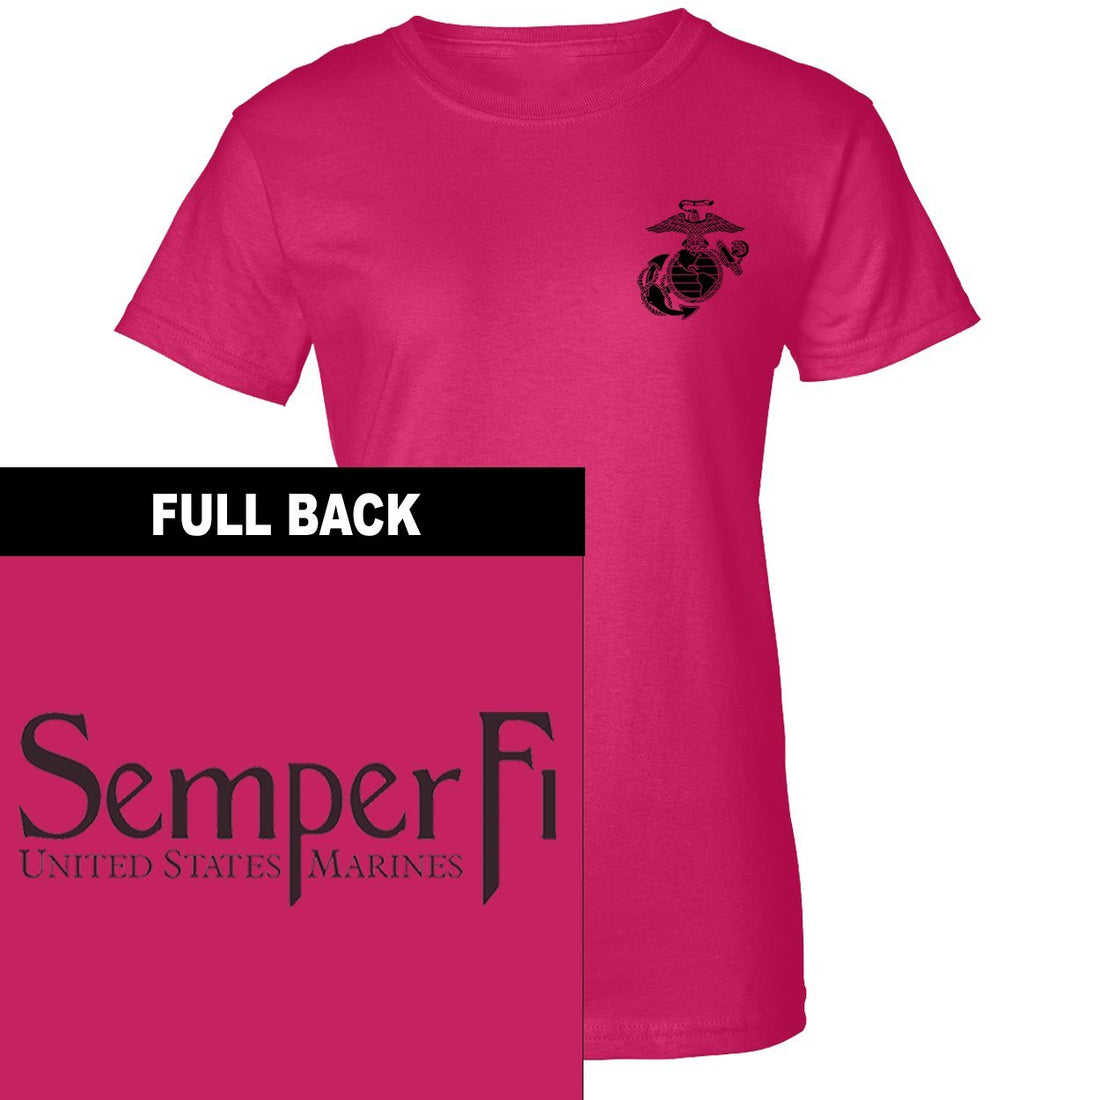 Semper Fi 2-Sided Women's T-Shirt